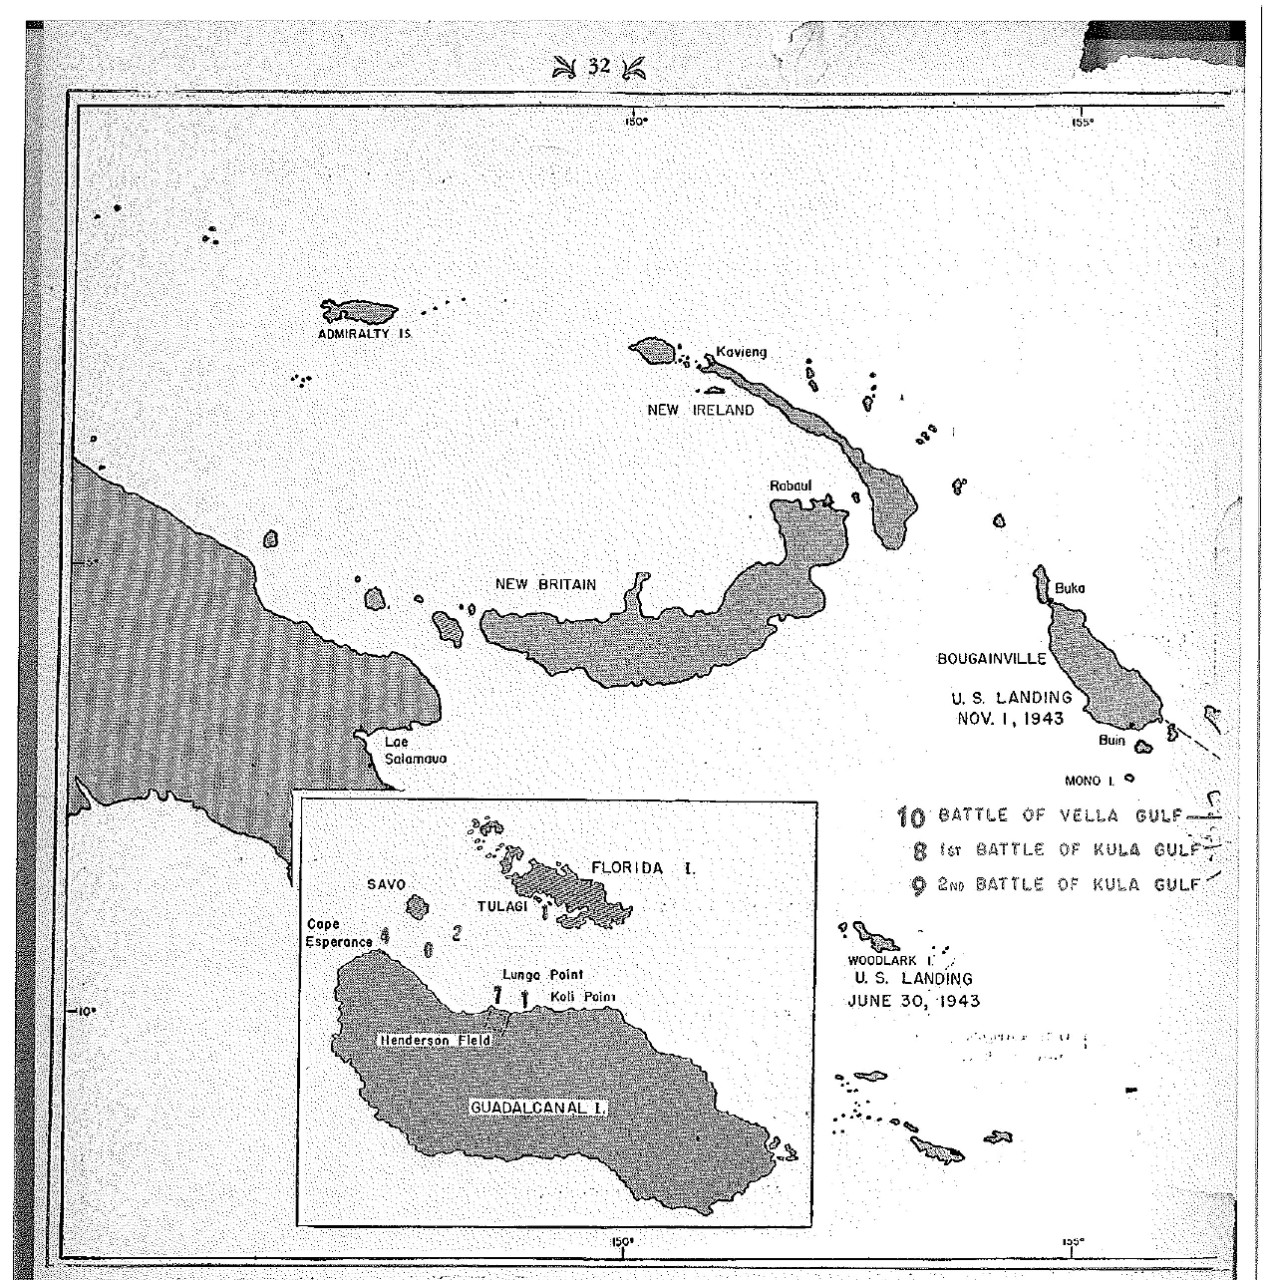 <p>Map of US Landings&nbsp;</p>